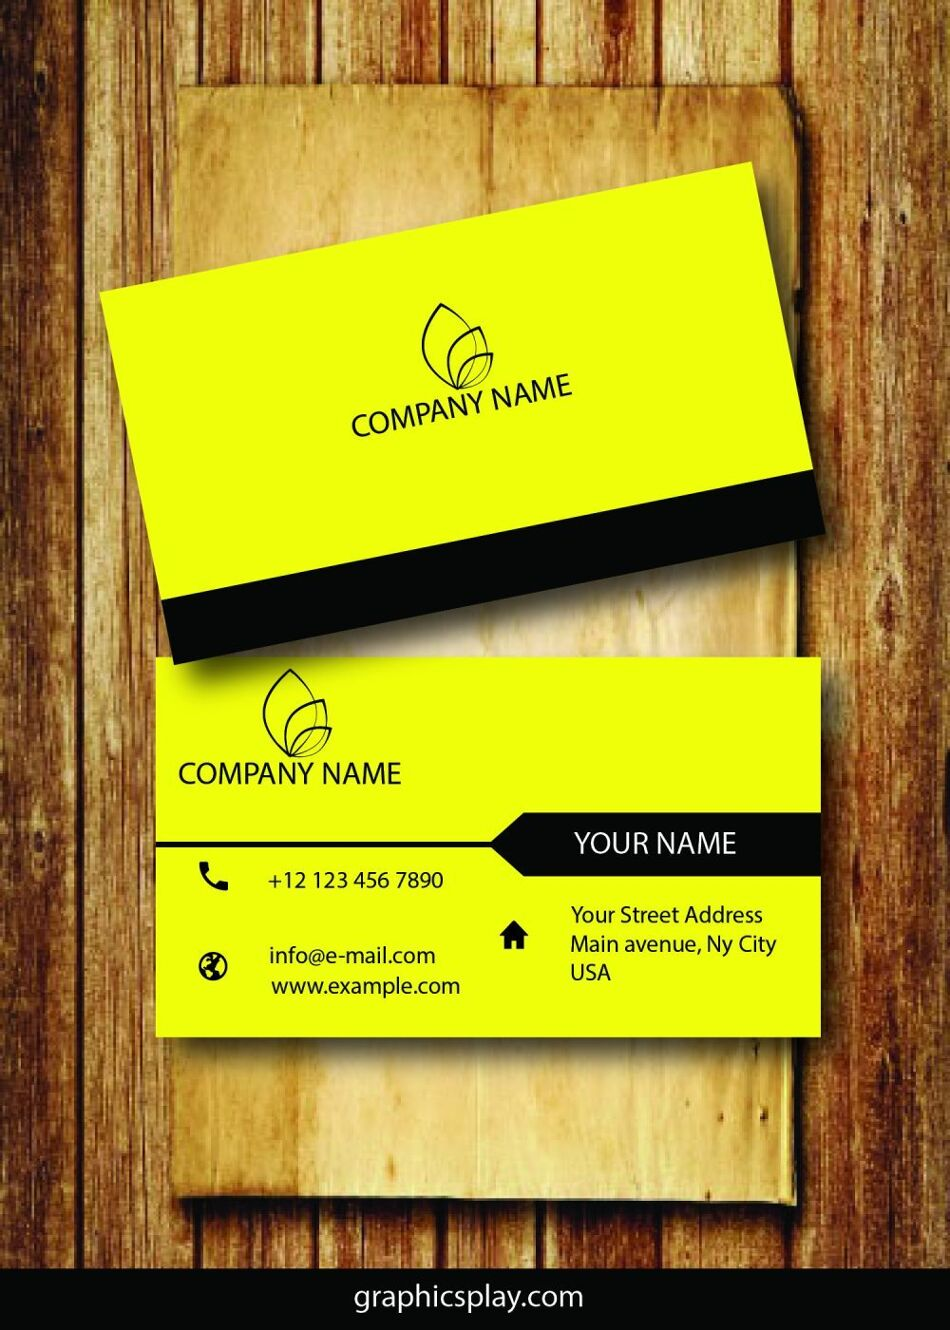 Business Card Design Vector Template - ID 1695 1